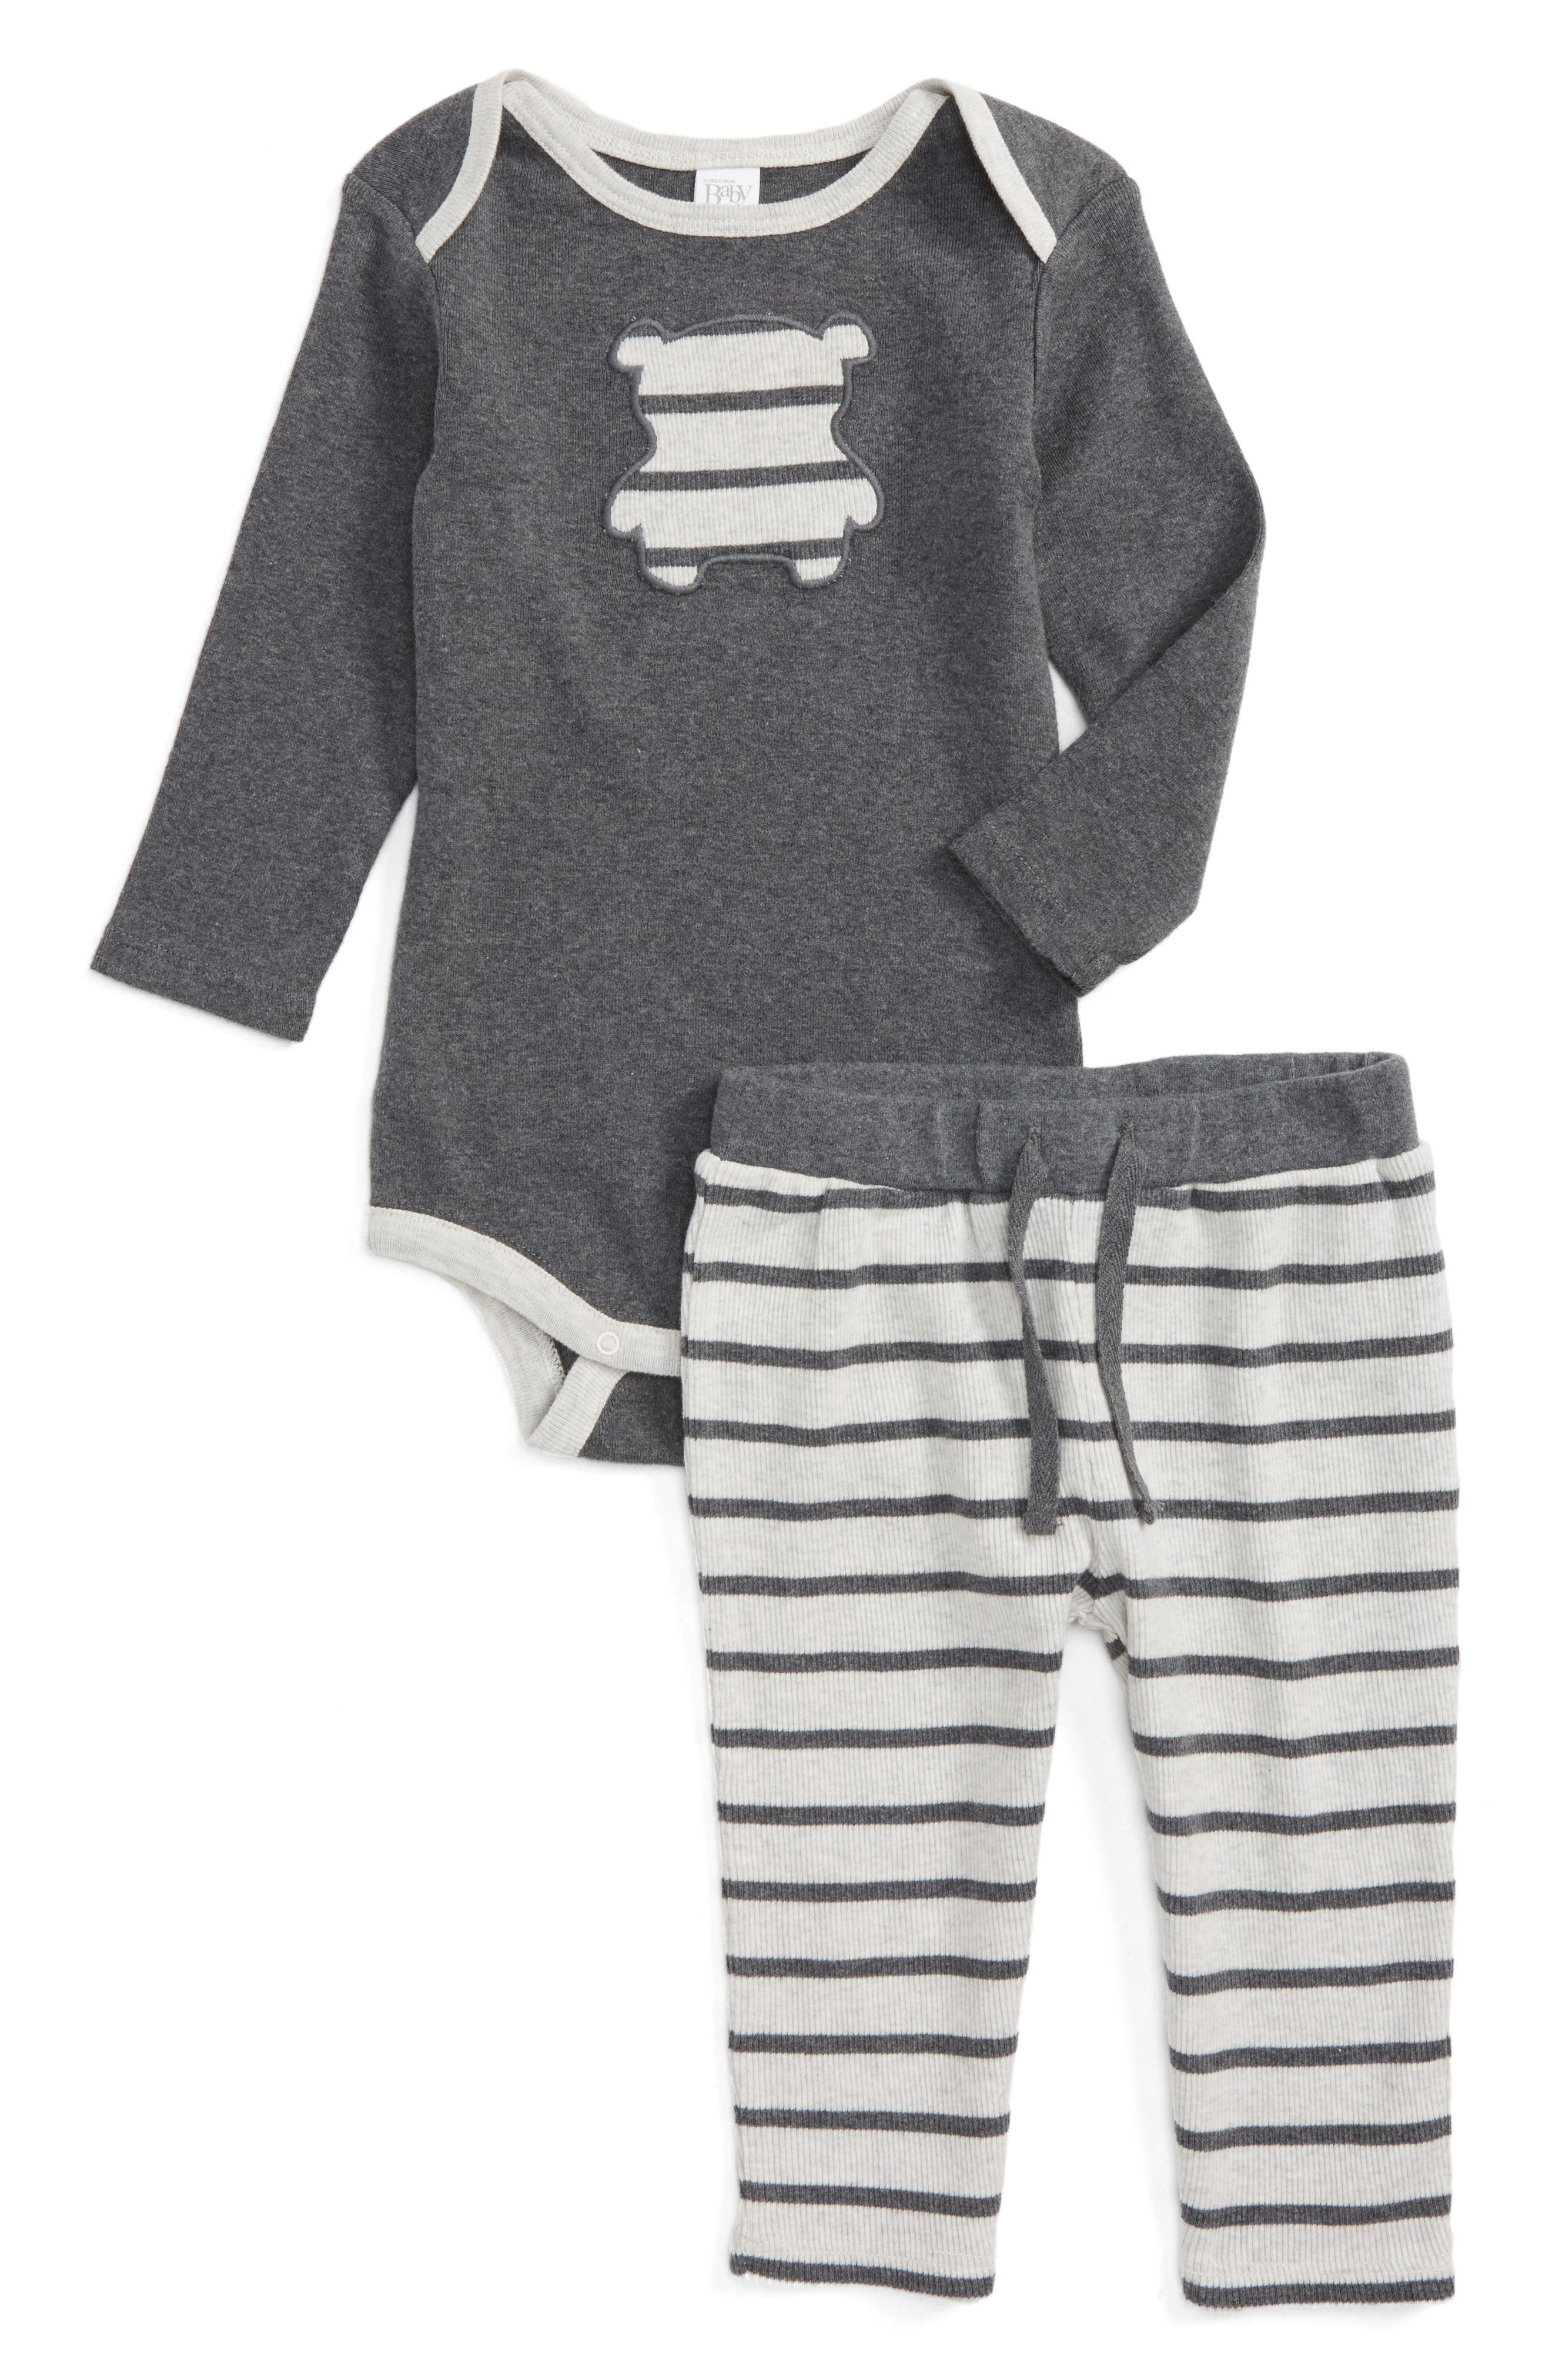 NORDSTROM BABY Teddy Appliqué Bodysuit & Pants Set